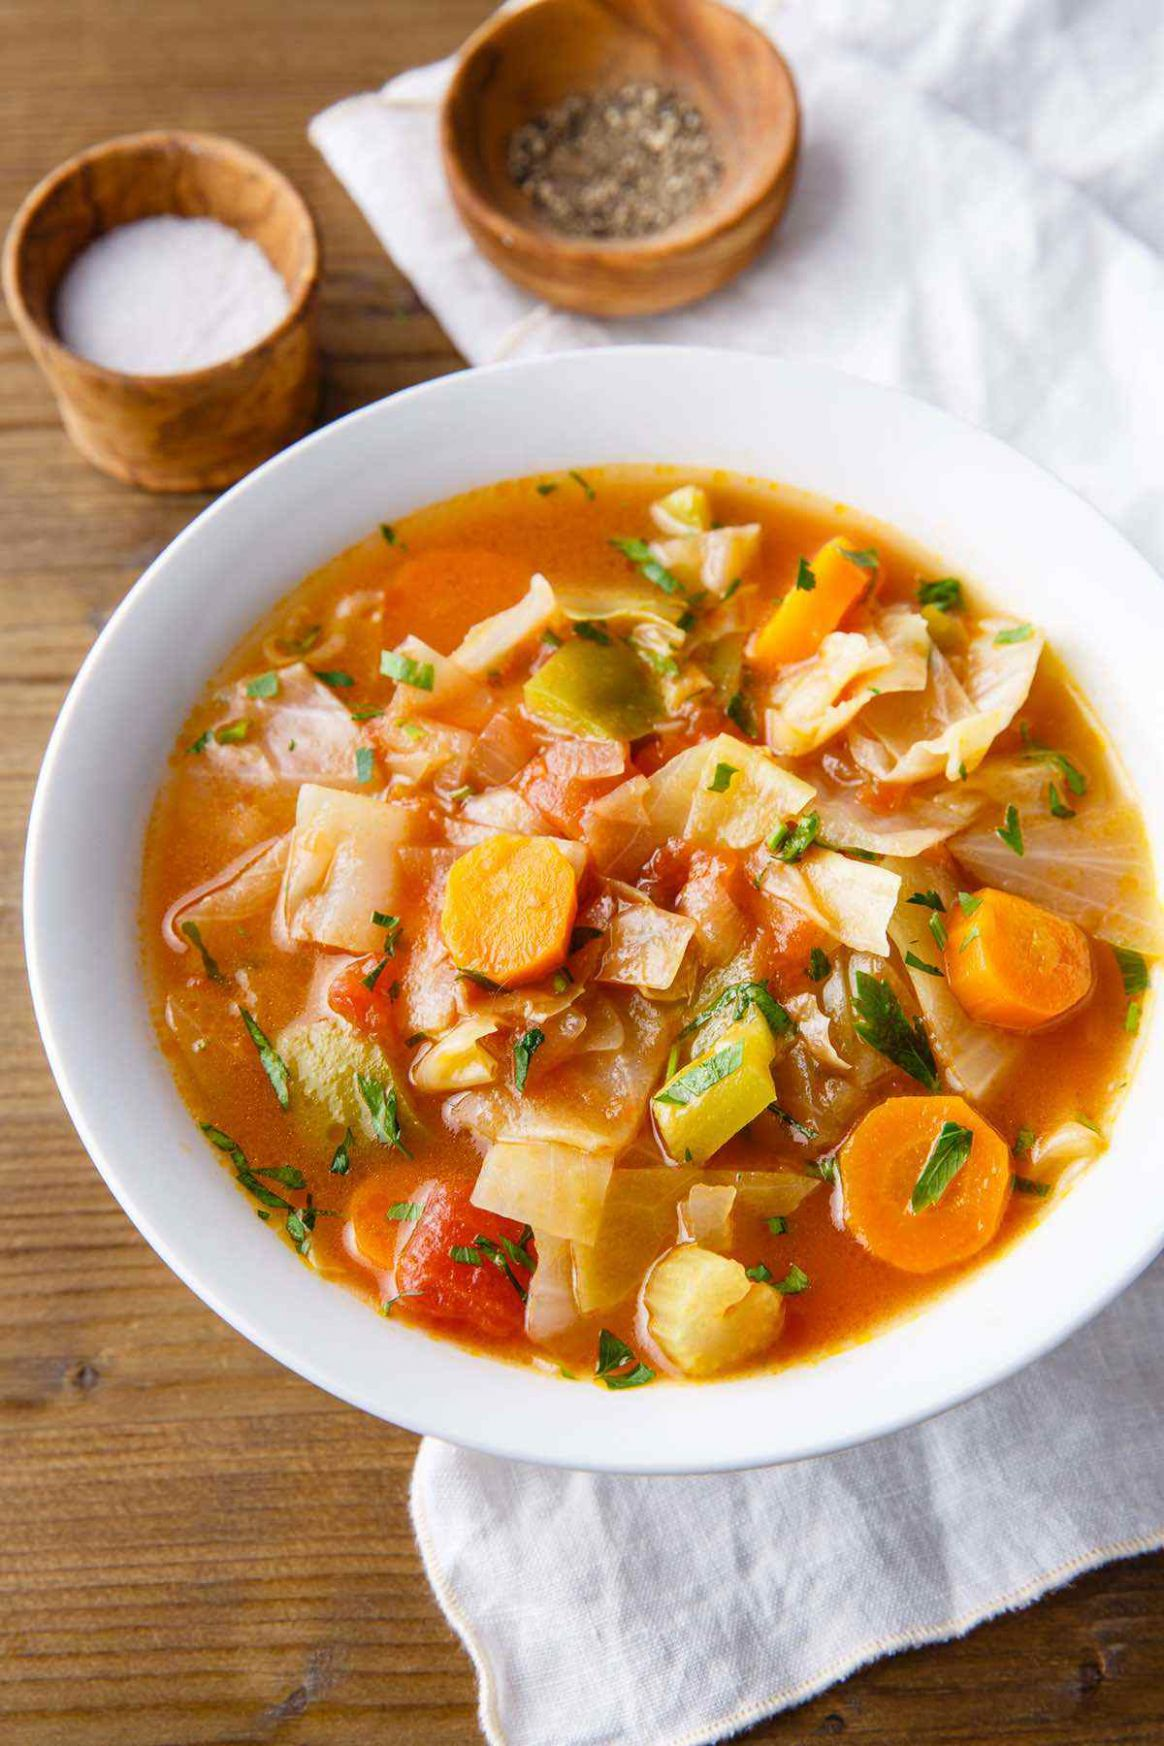 Cabbage Weight Loss Soup (Cozy, Comforting and Nutritious) - Soup Recipes For Weight Loss